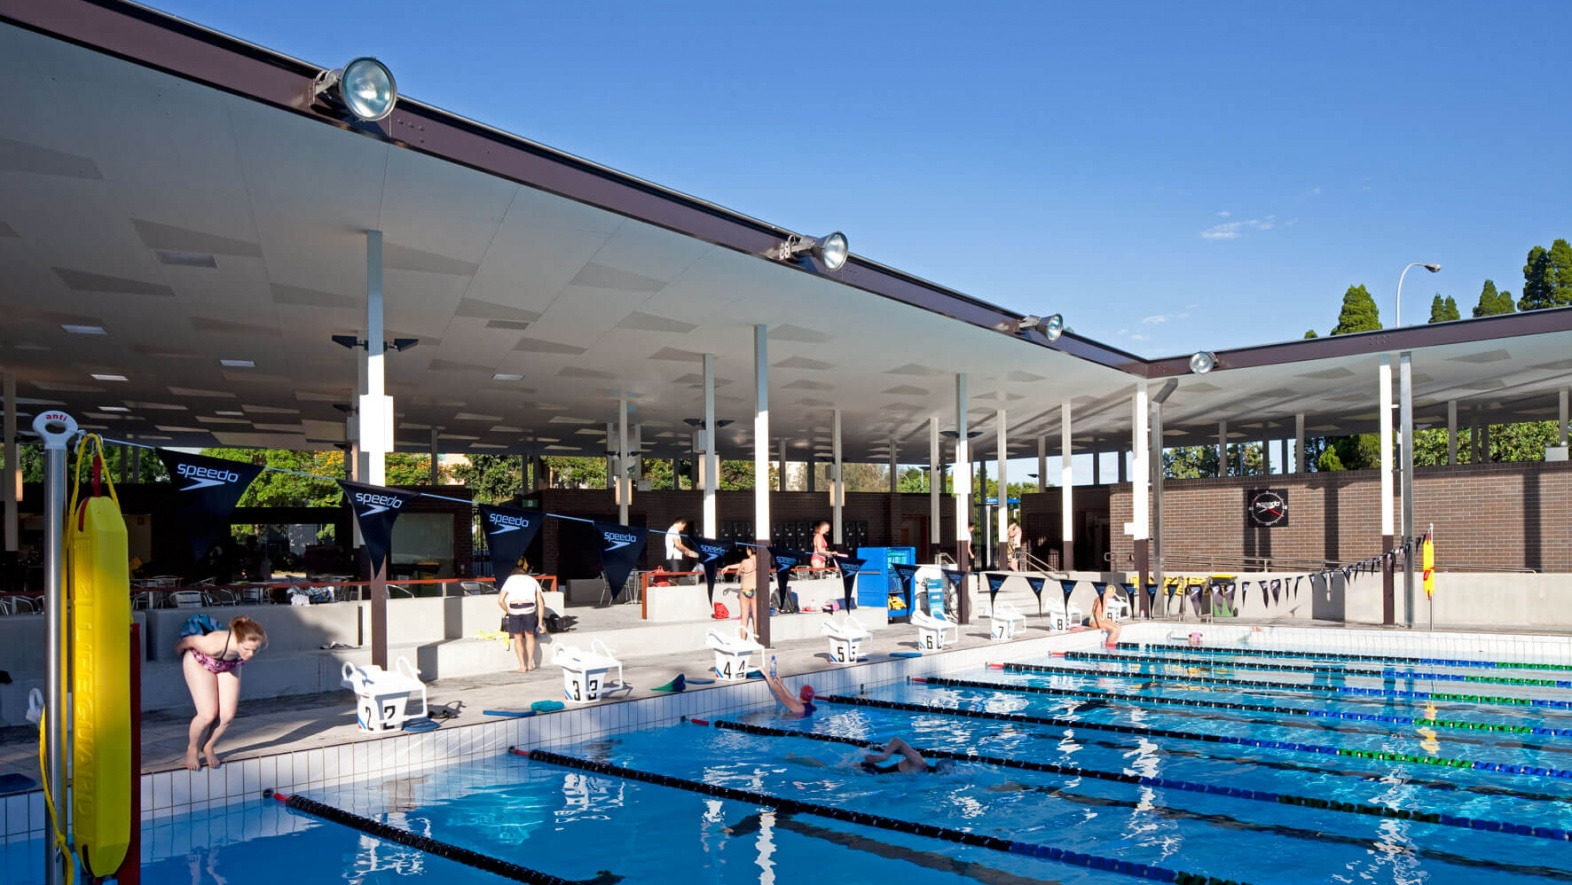 University of queensland aquatic centre david theile for Pool design queensland